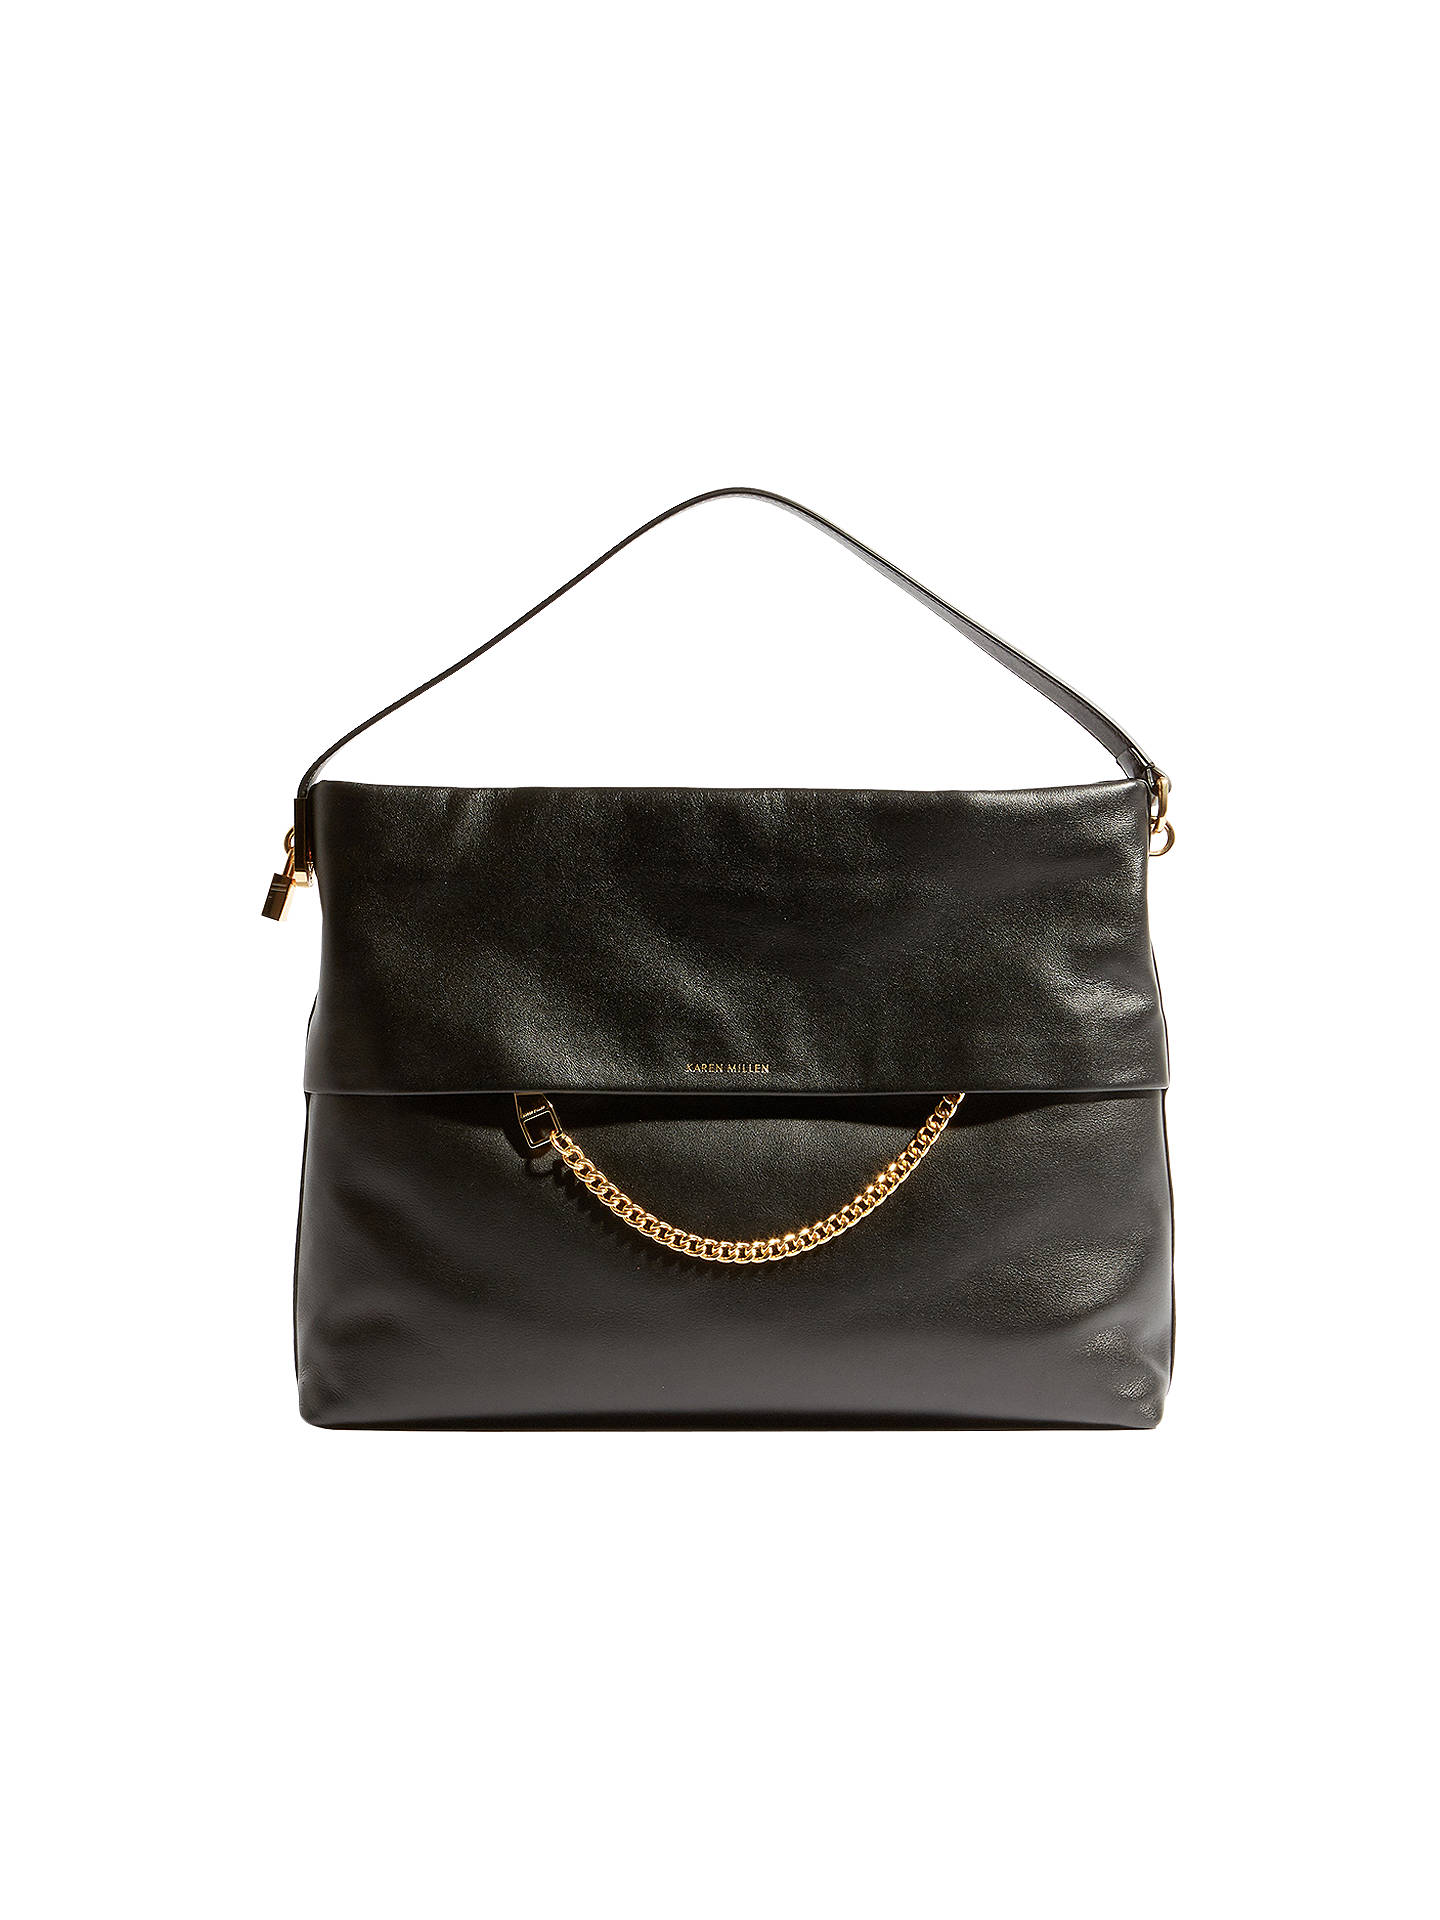 8344ae5763 Buy Karen Millen Leather Chain Zip Cross Body Bag, Black Online at  johnlewis.com ...